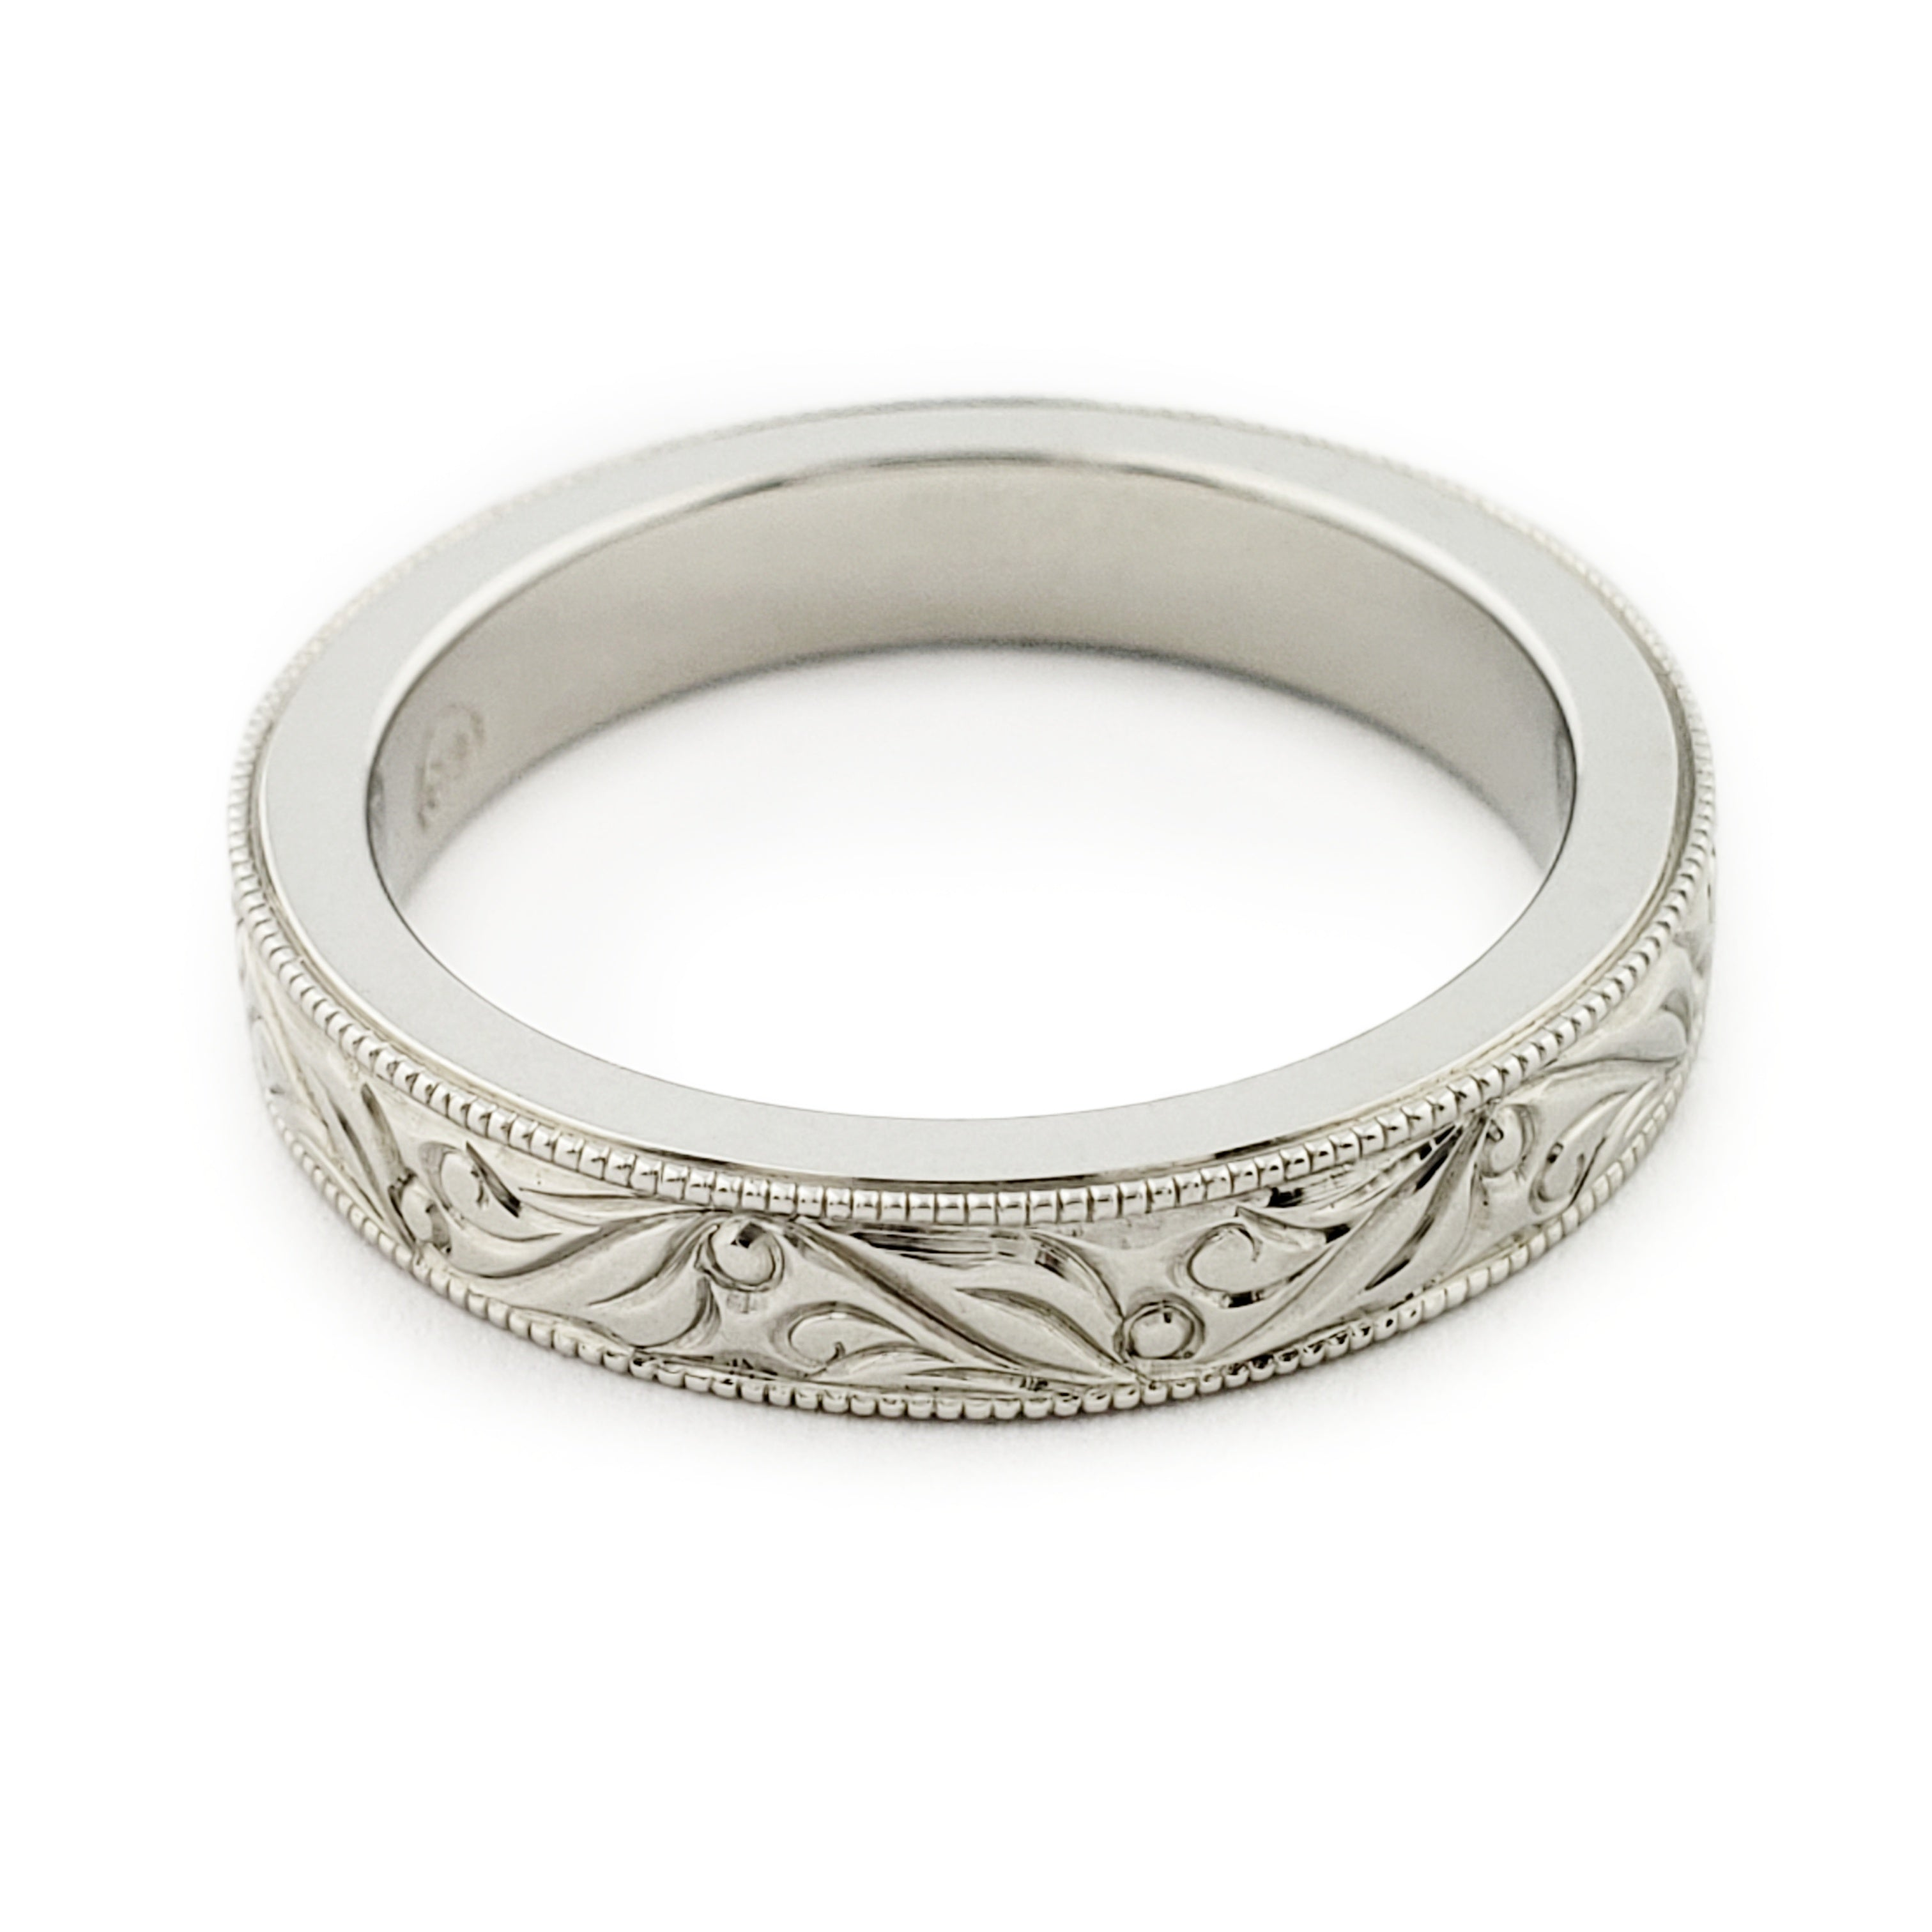 White Gold Hand Engraved Wedding Ring | Era Design Vancouver Canada